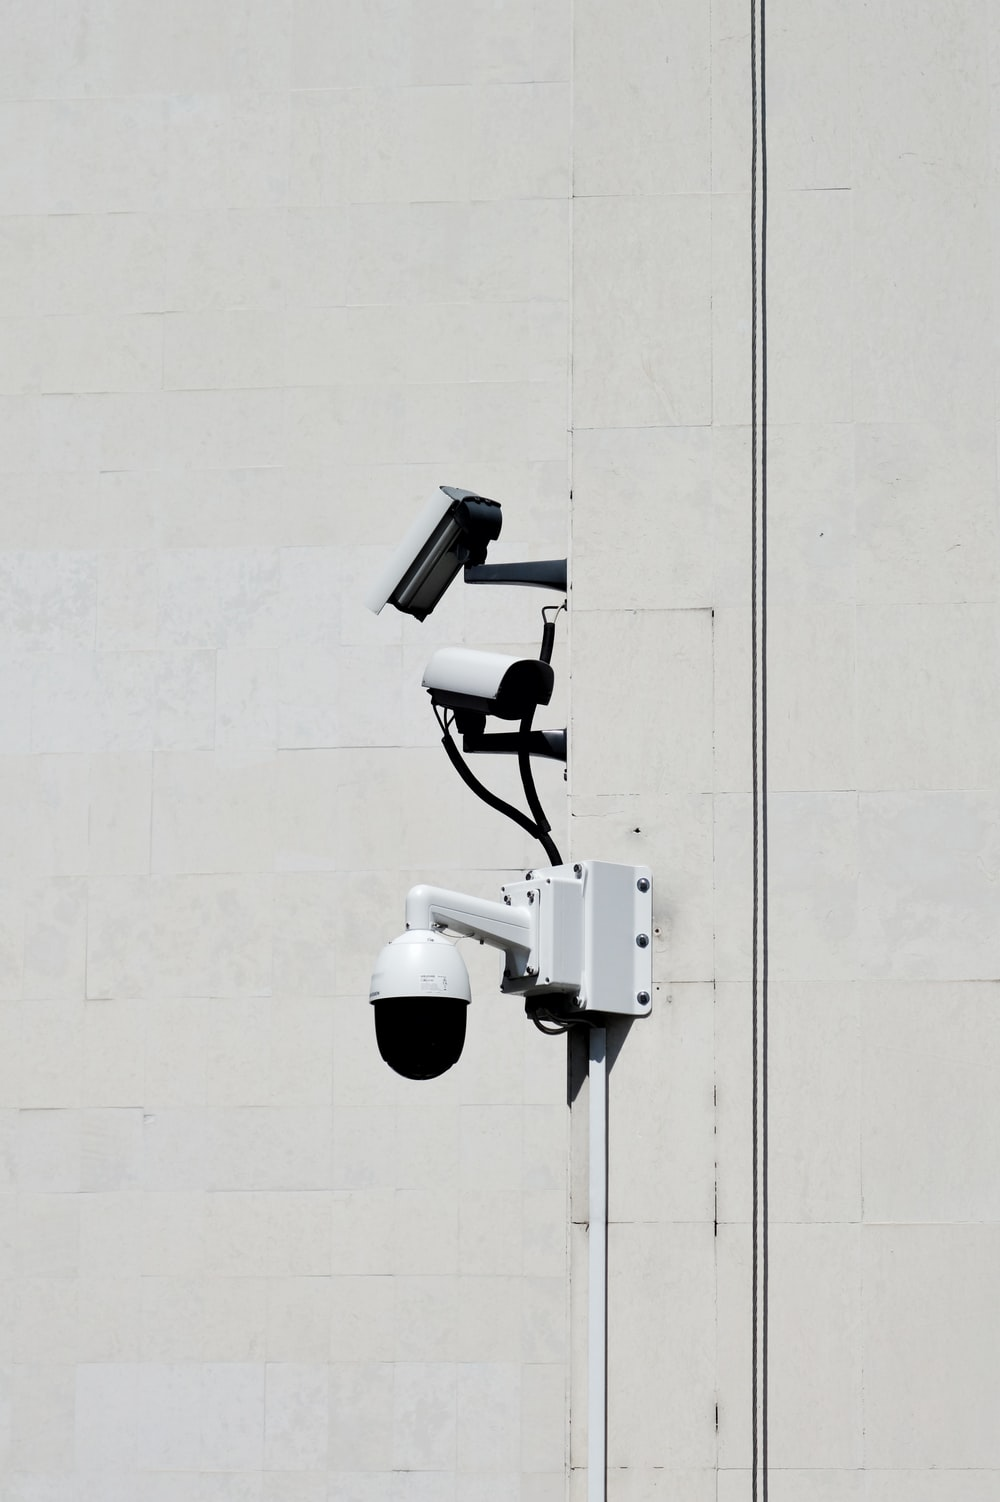 white CCTV cameras during daytime